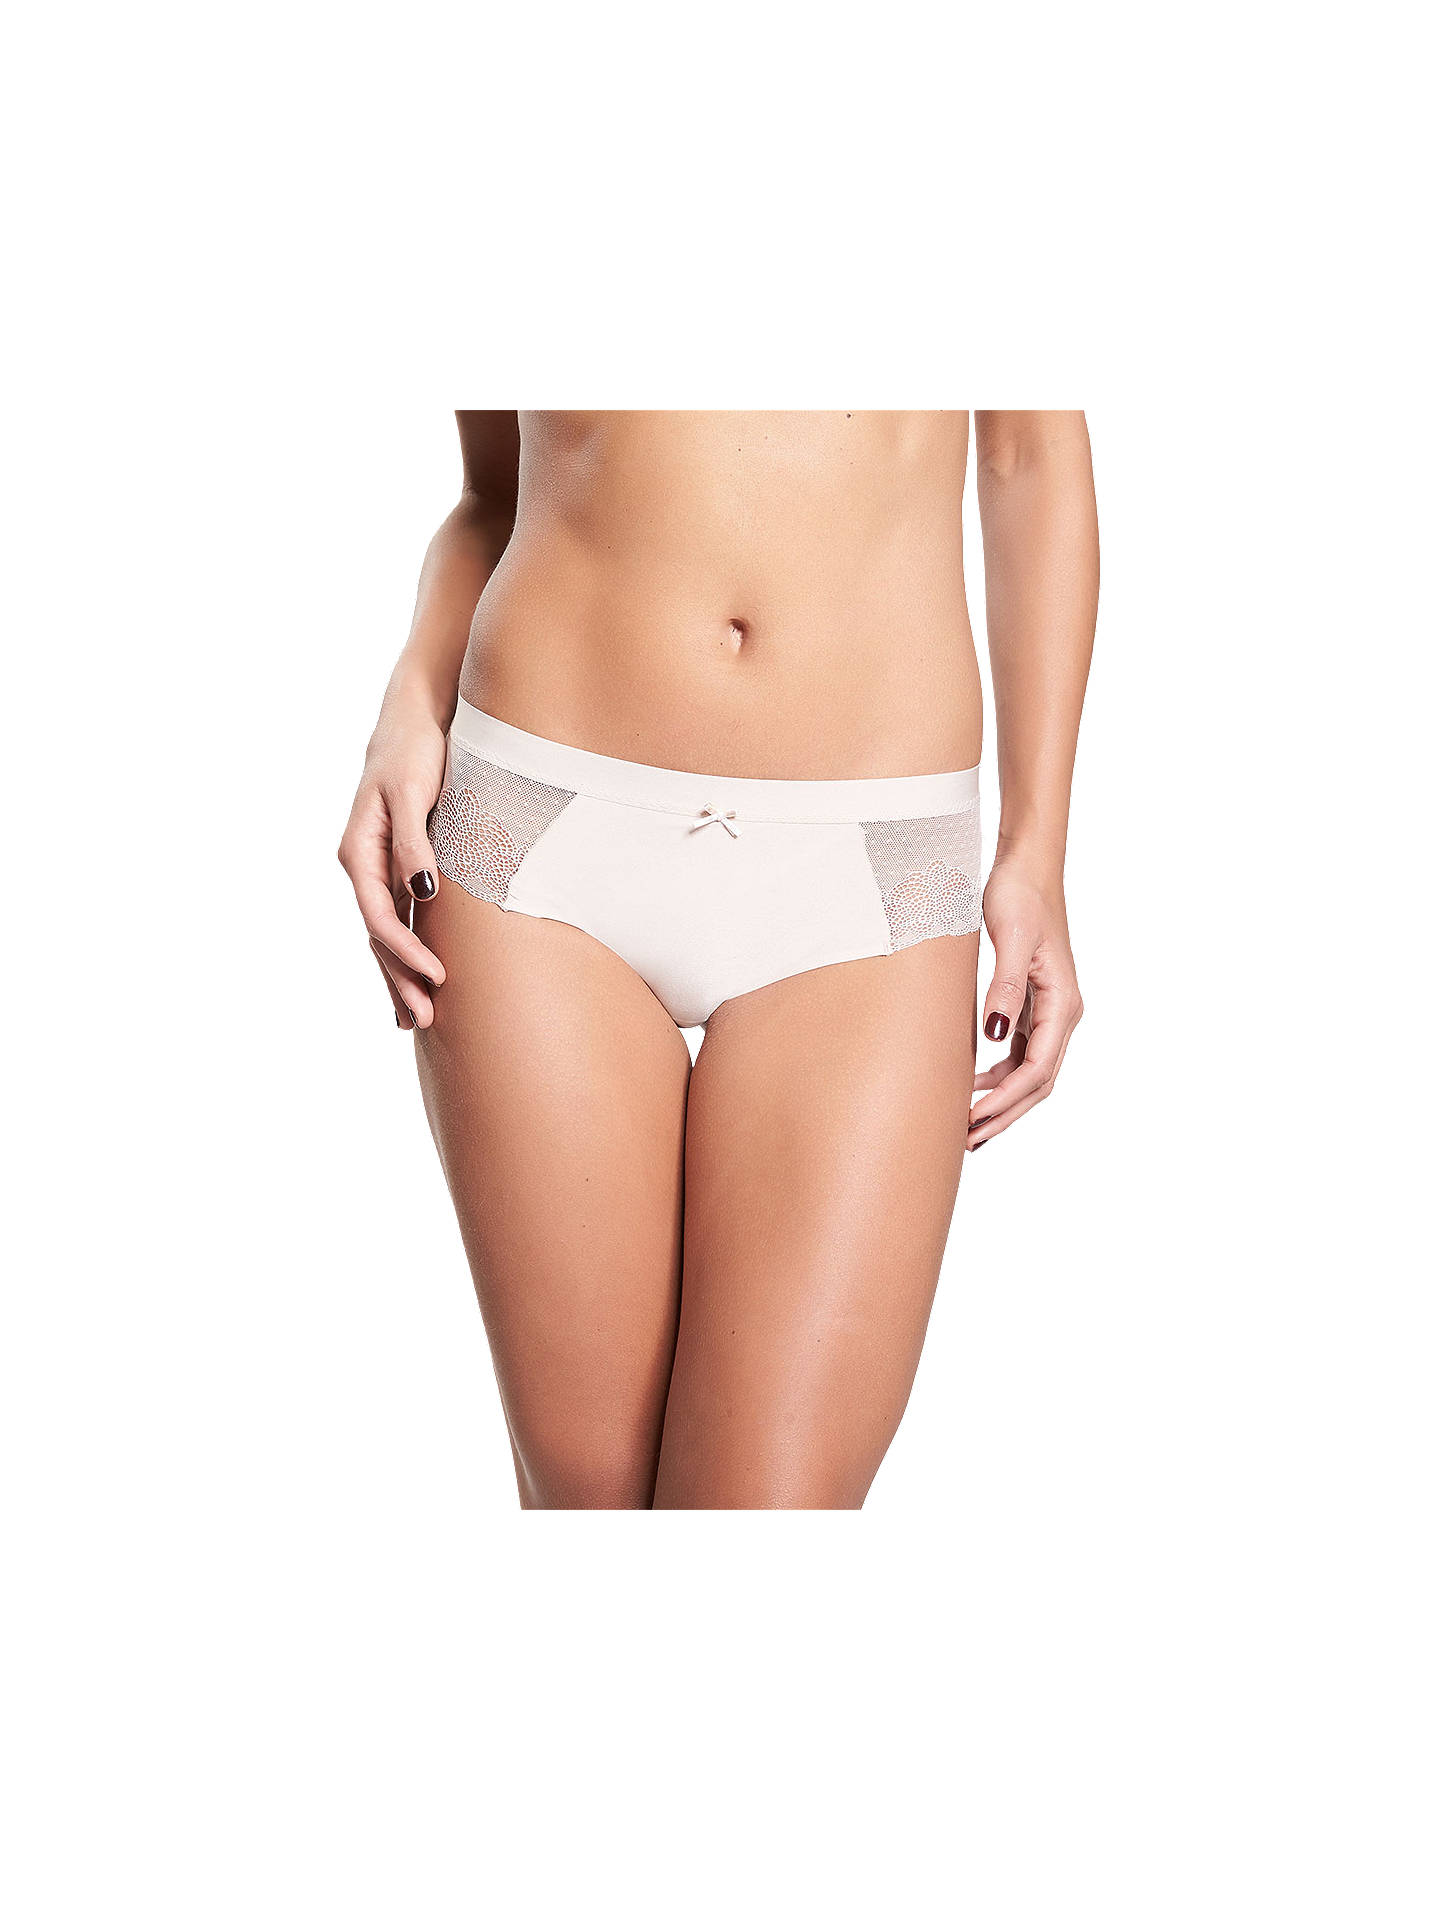 17df7a5b5055 Buy Chantelle Le Marais Hipster Briefs, Cappuccino, S Online at  johnlewis.com ...